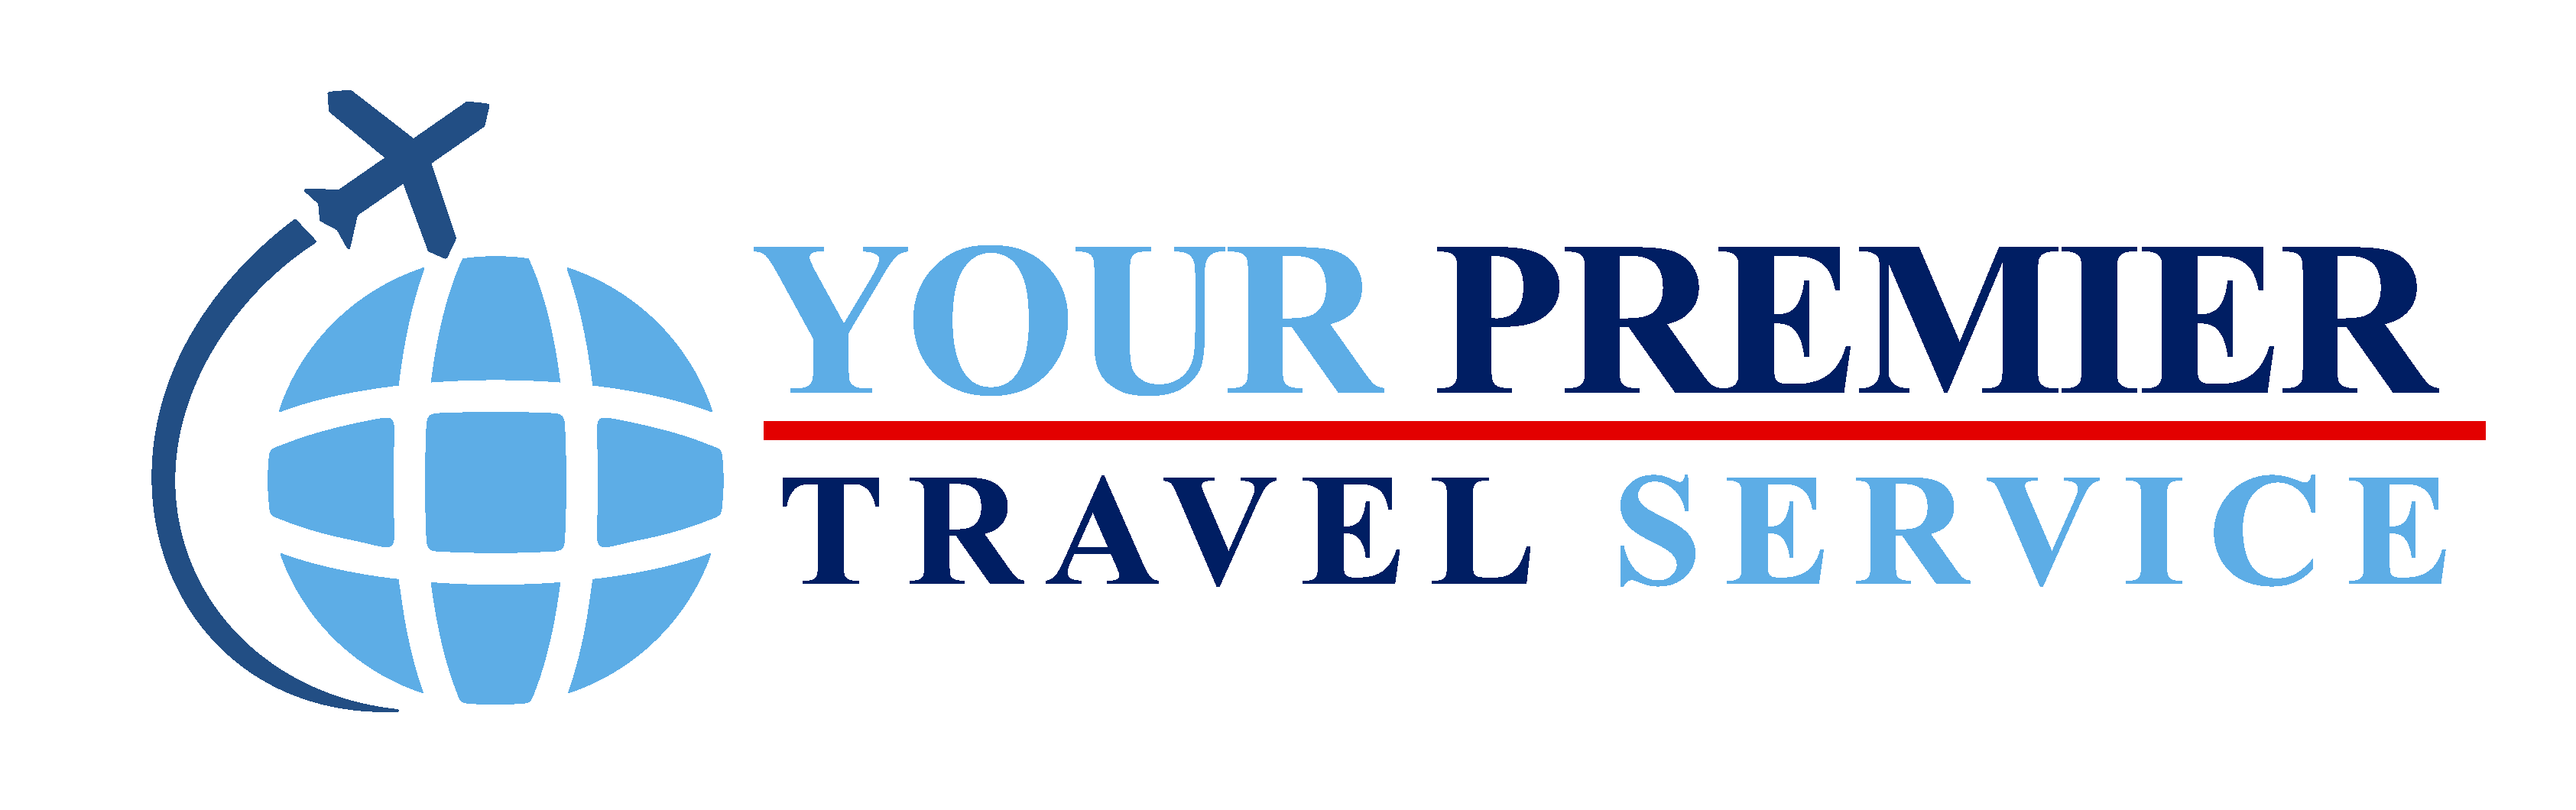 3370x1060 Welcome To Your Premier Travel Service Your Premier Travel Service